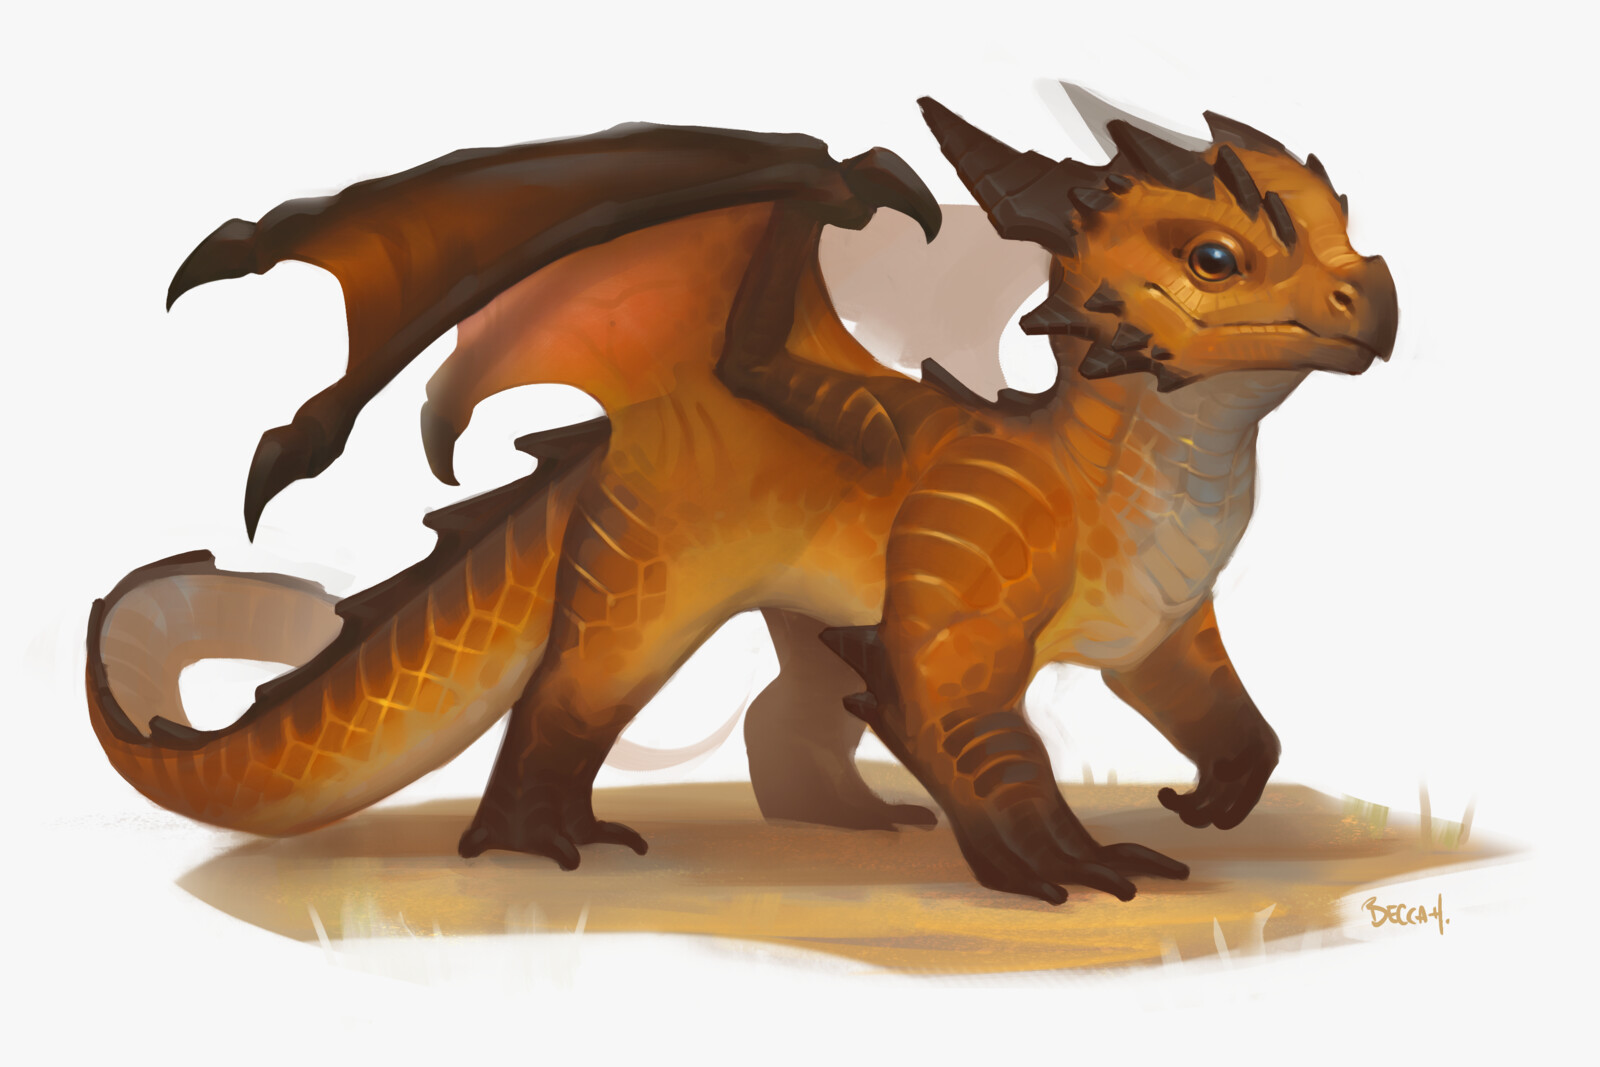 Desert Pseudodragon with process